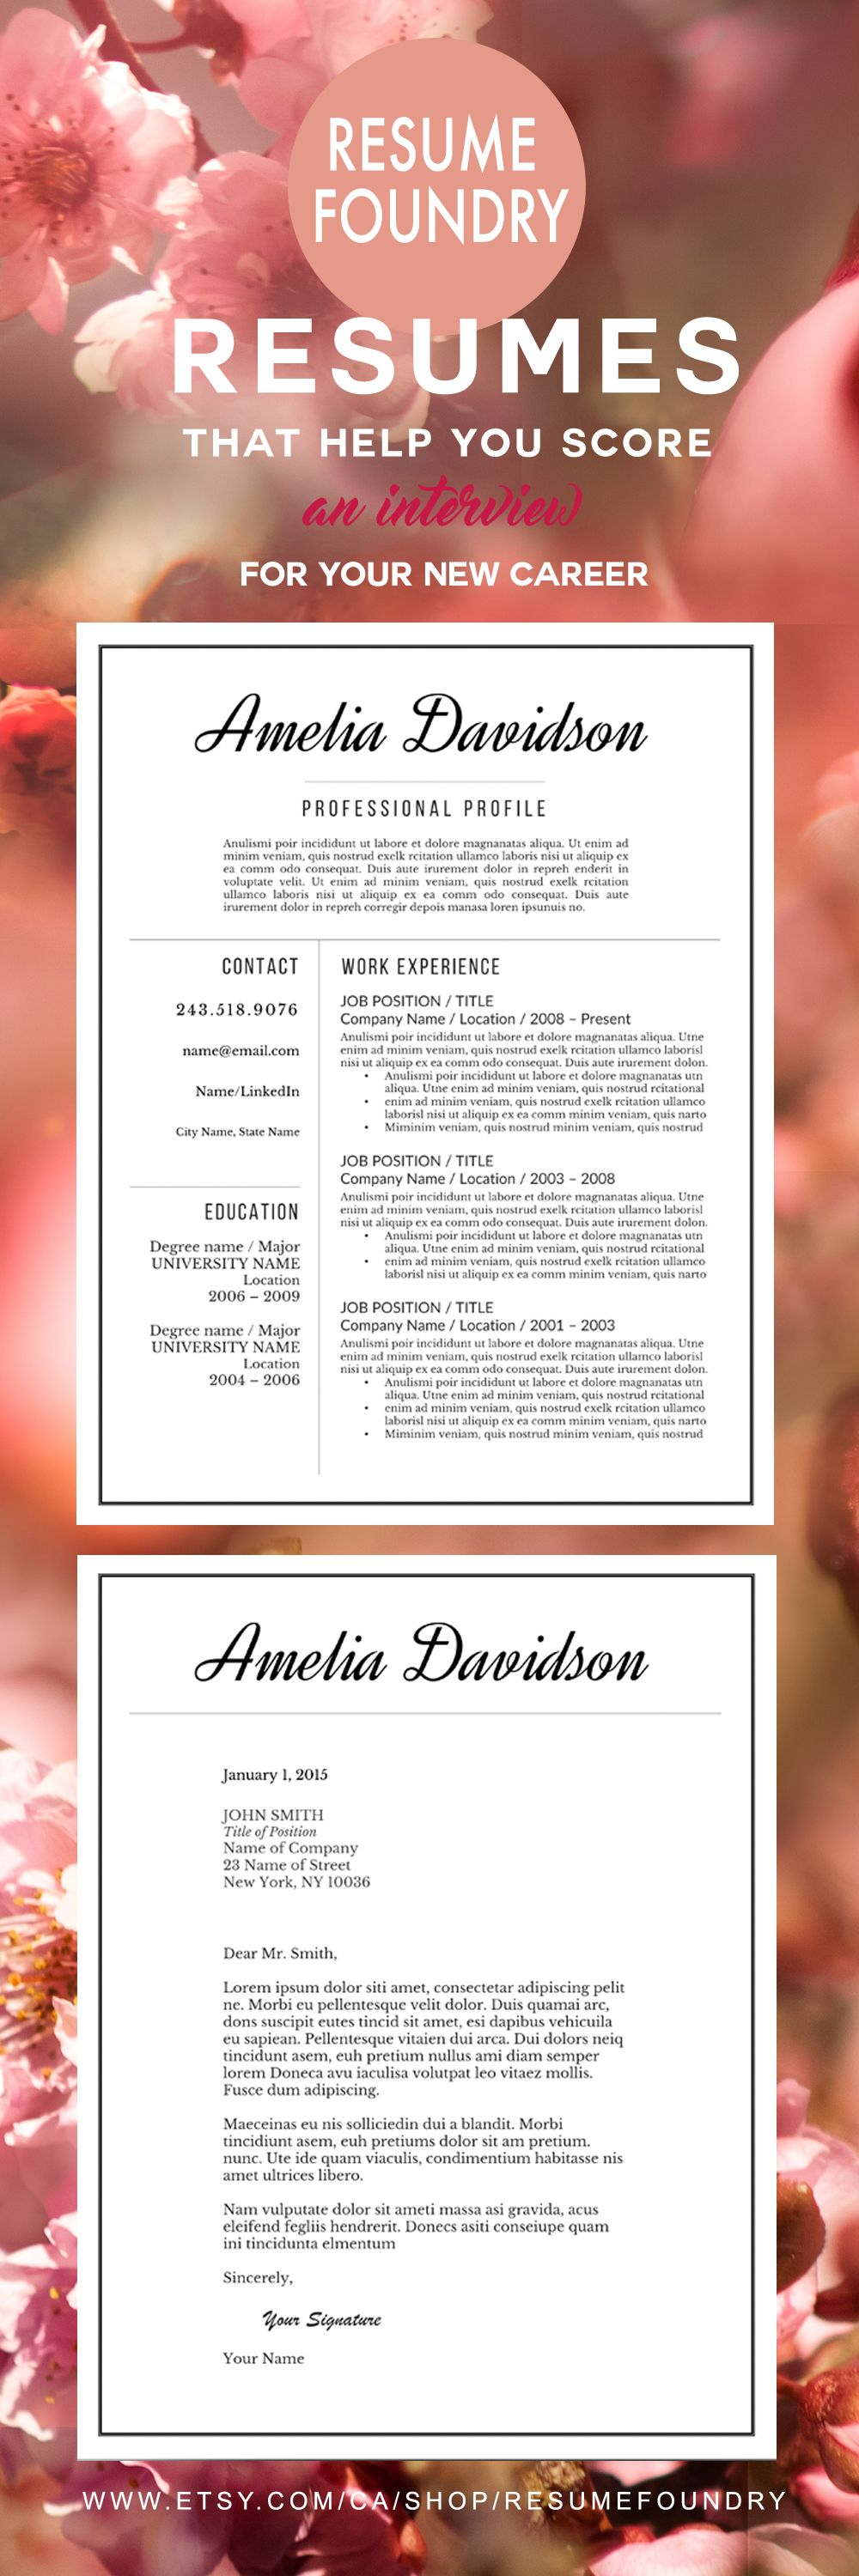 beautiful resume template from resume foundry microsoft publishermicrosoft